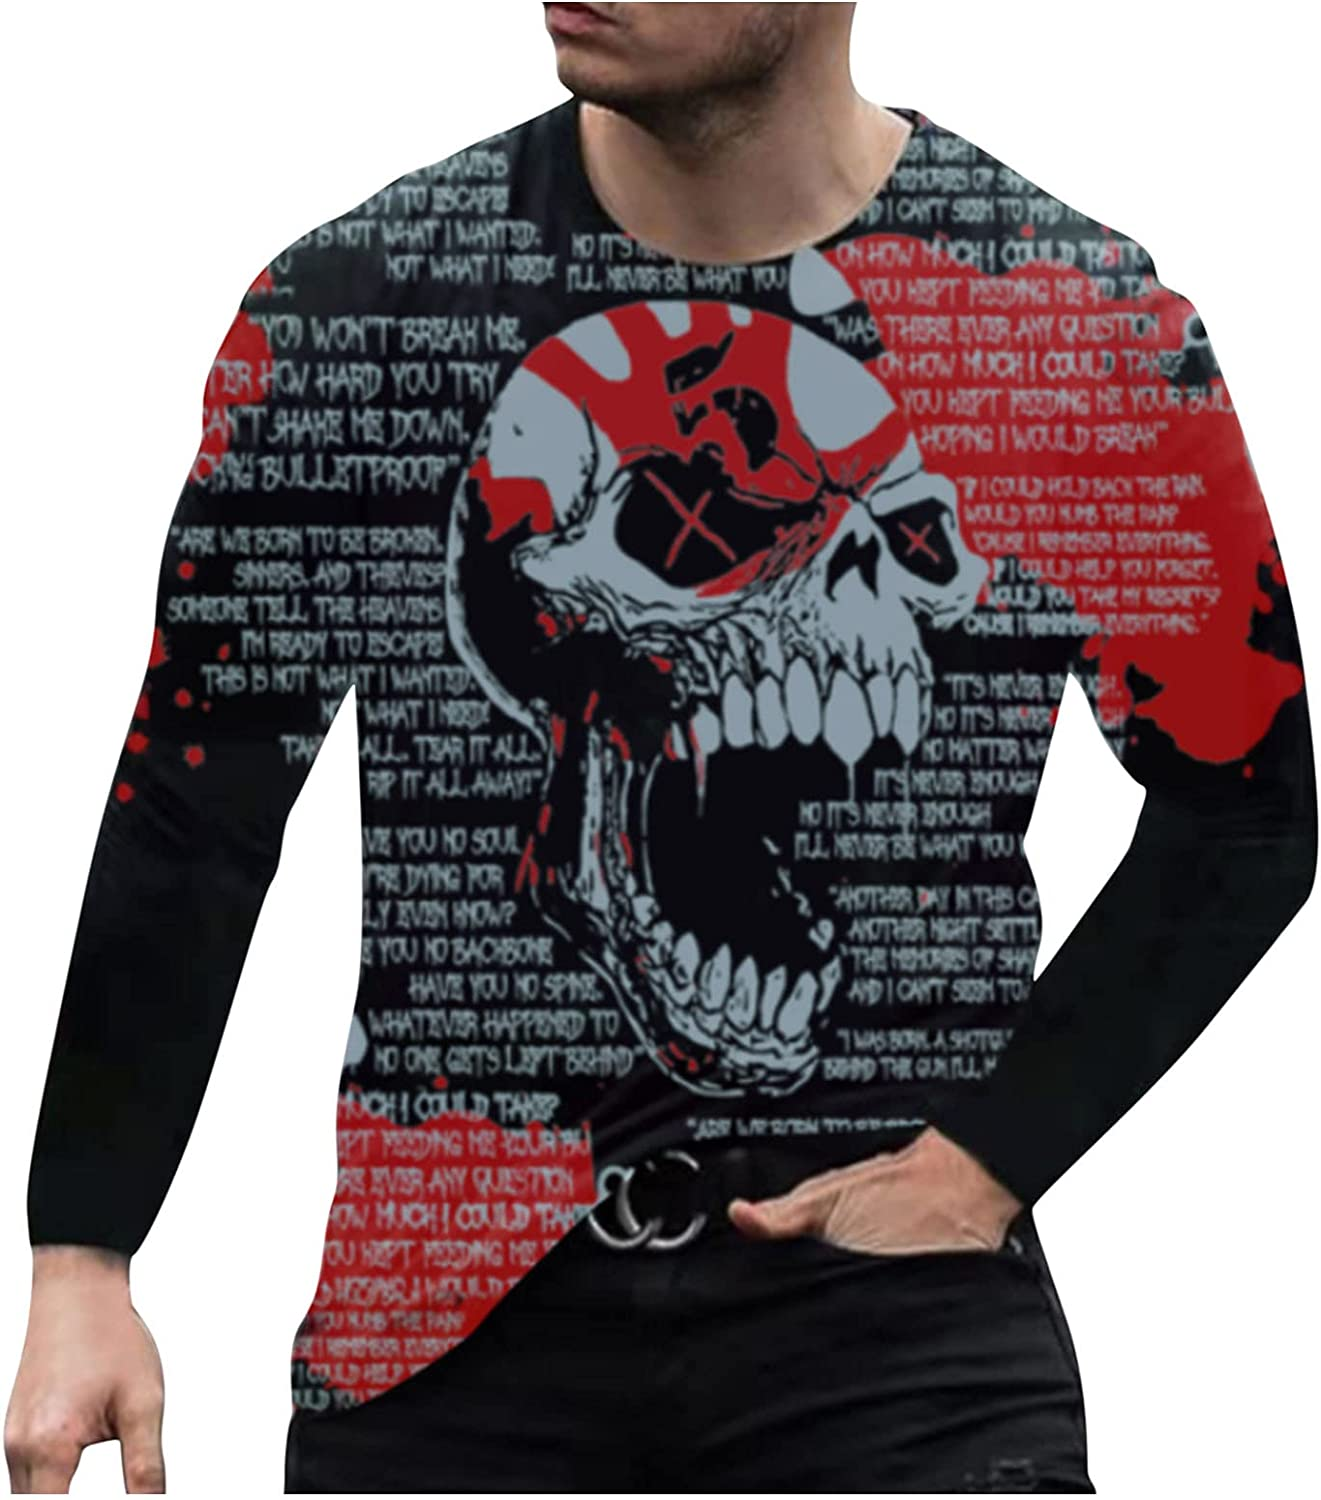 Graphic T-Shirt for Mens Lightweight Casual Long Sleeve Baseball Cotton Tee Fashion Crewneck Gym Workout Tops Shirts